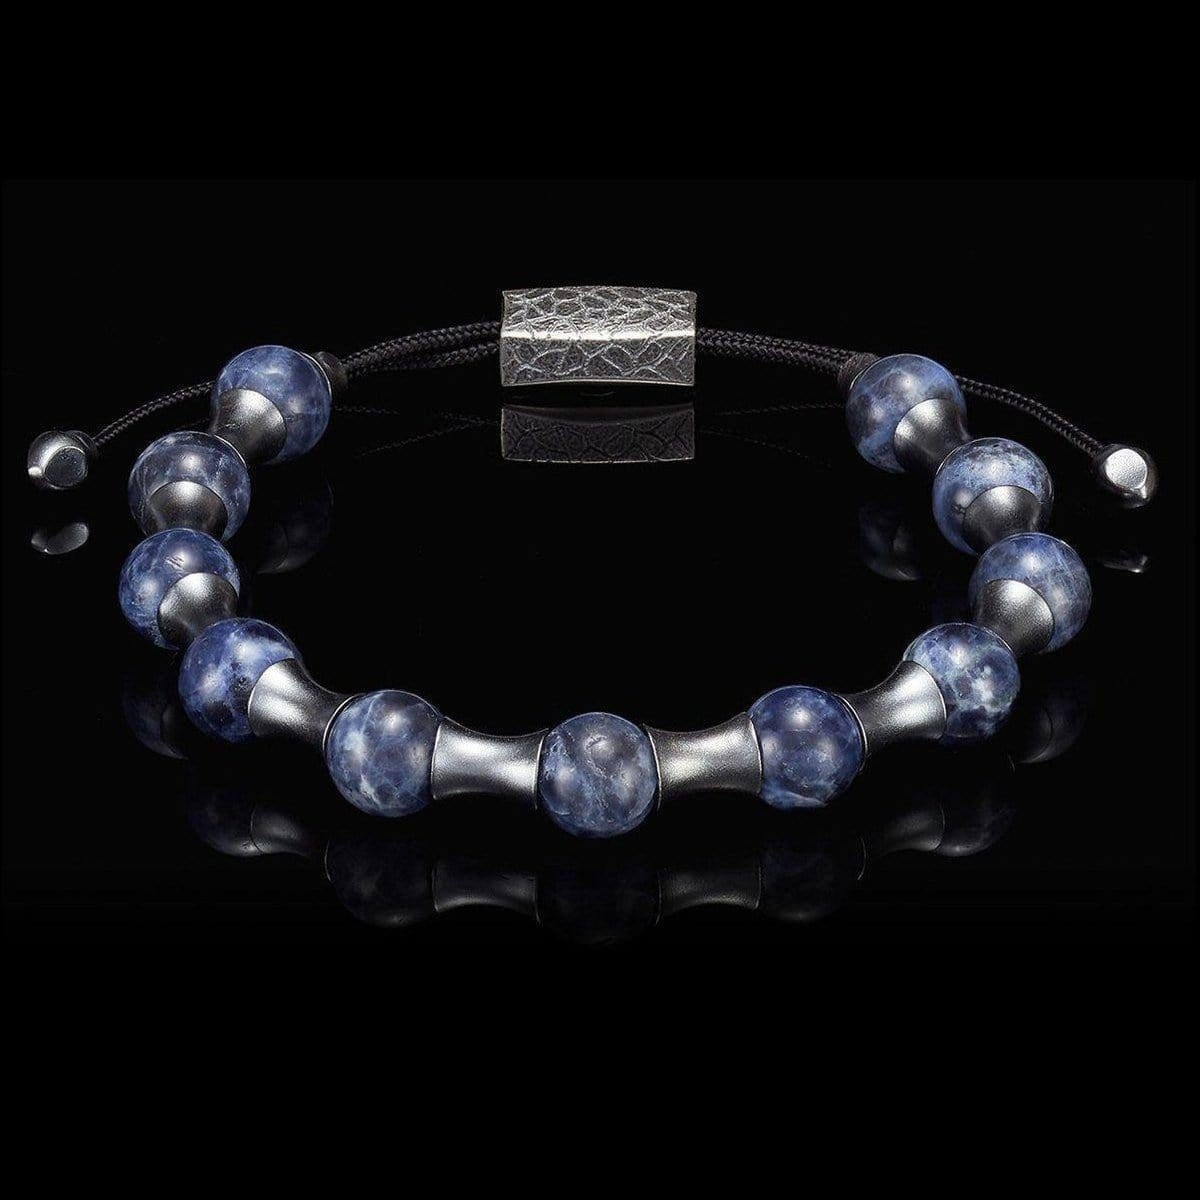 Men's Sodalite Zenith Bracelet - BB19 SOD-William Henry-Renee Taylor Gallery